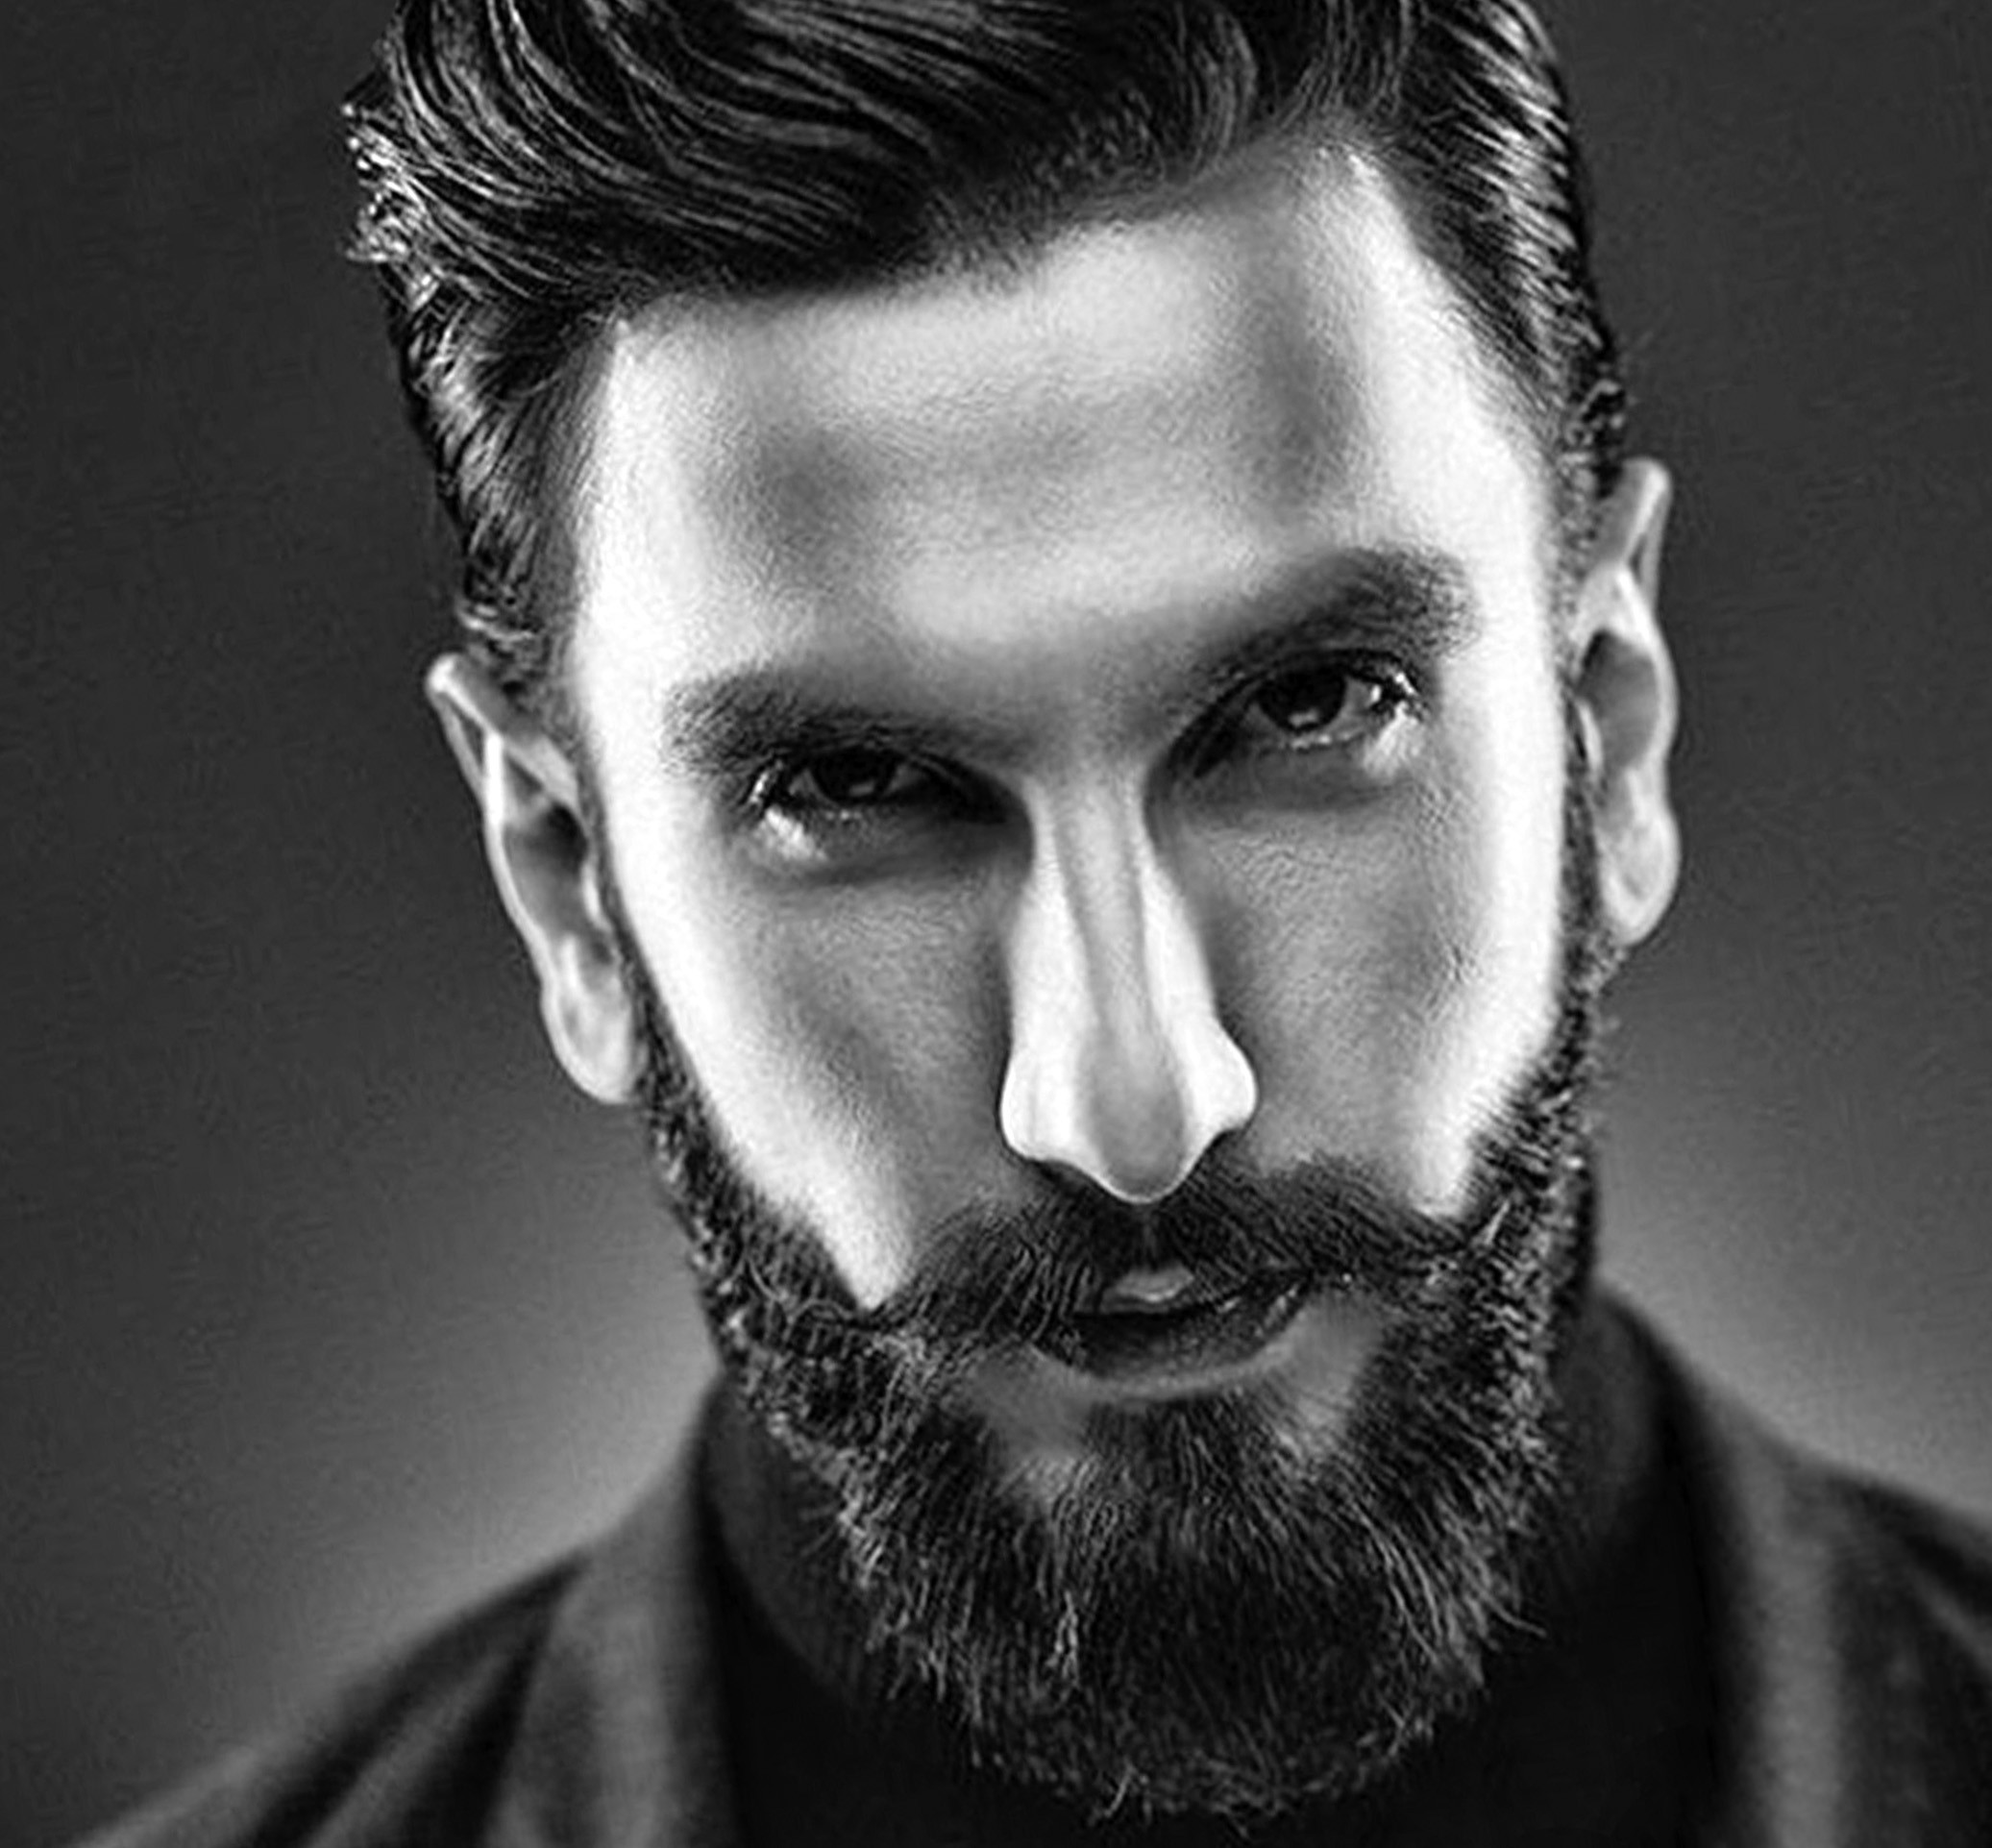 A full beard in the style of Ranveer Singh.